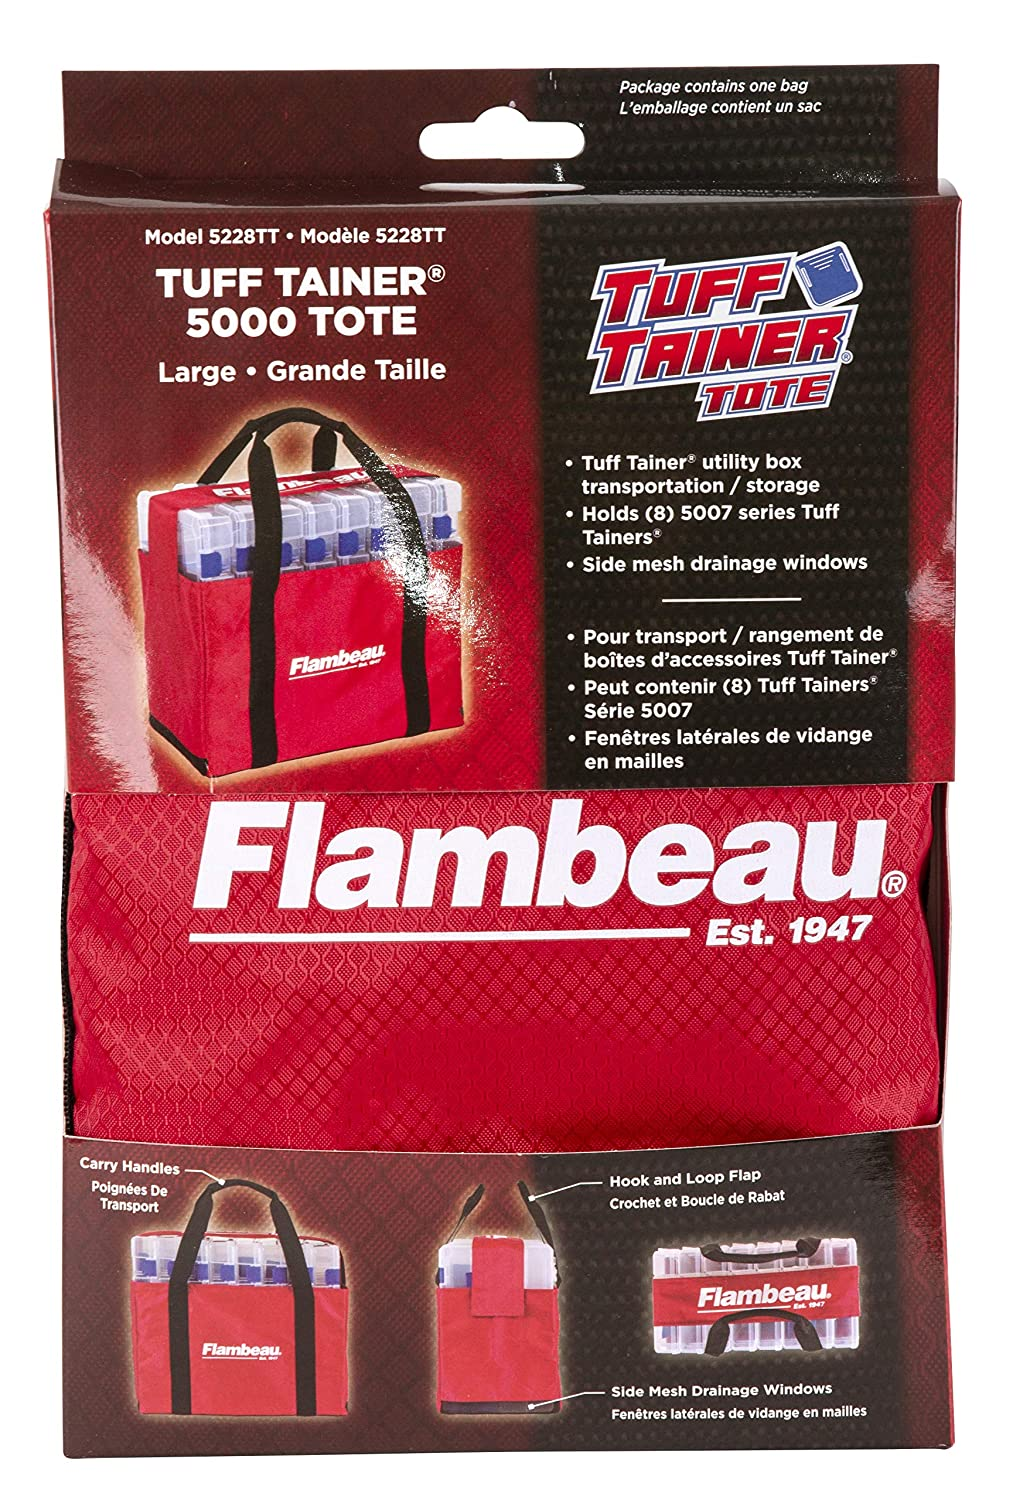 Flambeau Outdoors 5228TT 5000 Tuff Tainer Tote – Small – Bag ONLY